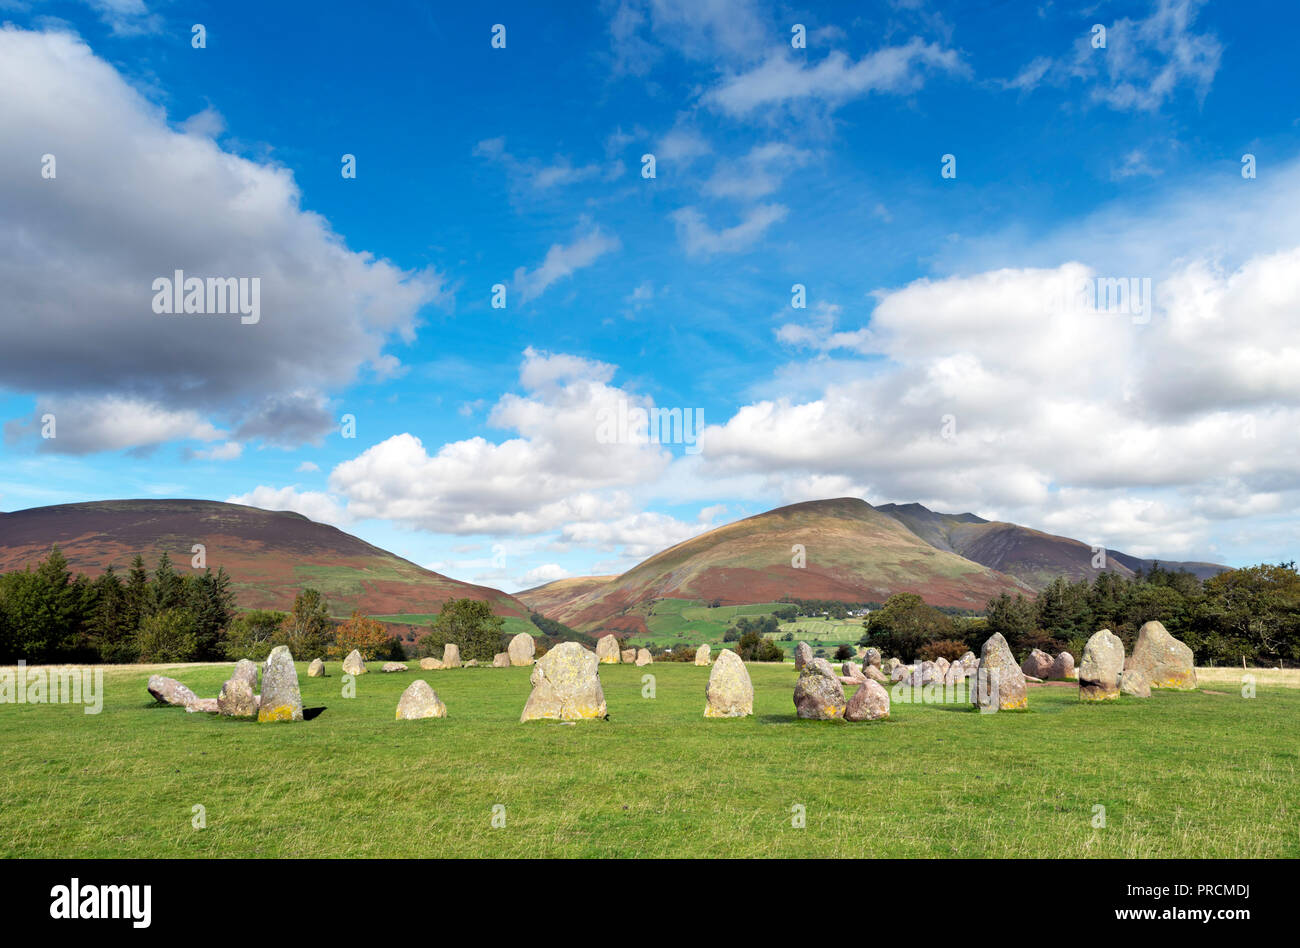 Castlerigg Stone Circle, a late neolithic to early bronze age site near Keswick, Lake District, Cumbria, UK - Stock Image